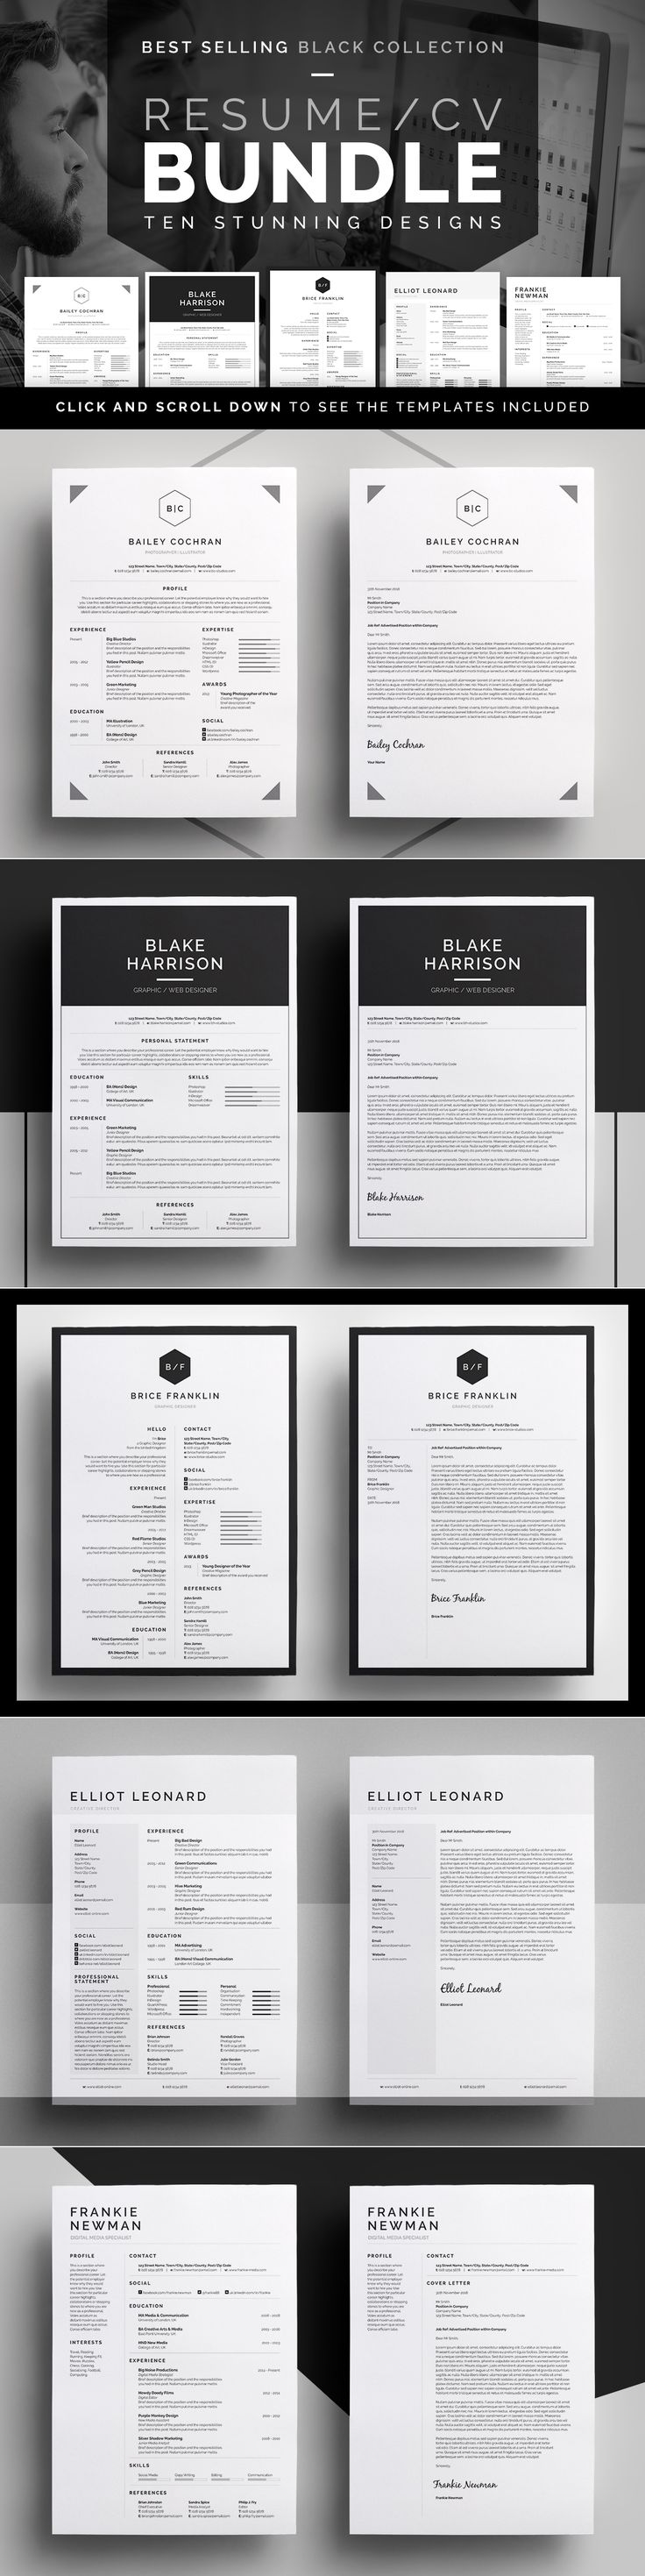 Resume/CV Bundle - Cover letters & Business cards. Customizable templates. Modern, minimal design. Black Collection by bilmaw creative on Creative Market